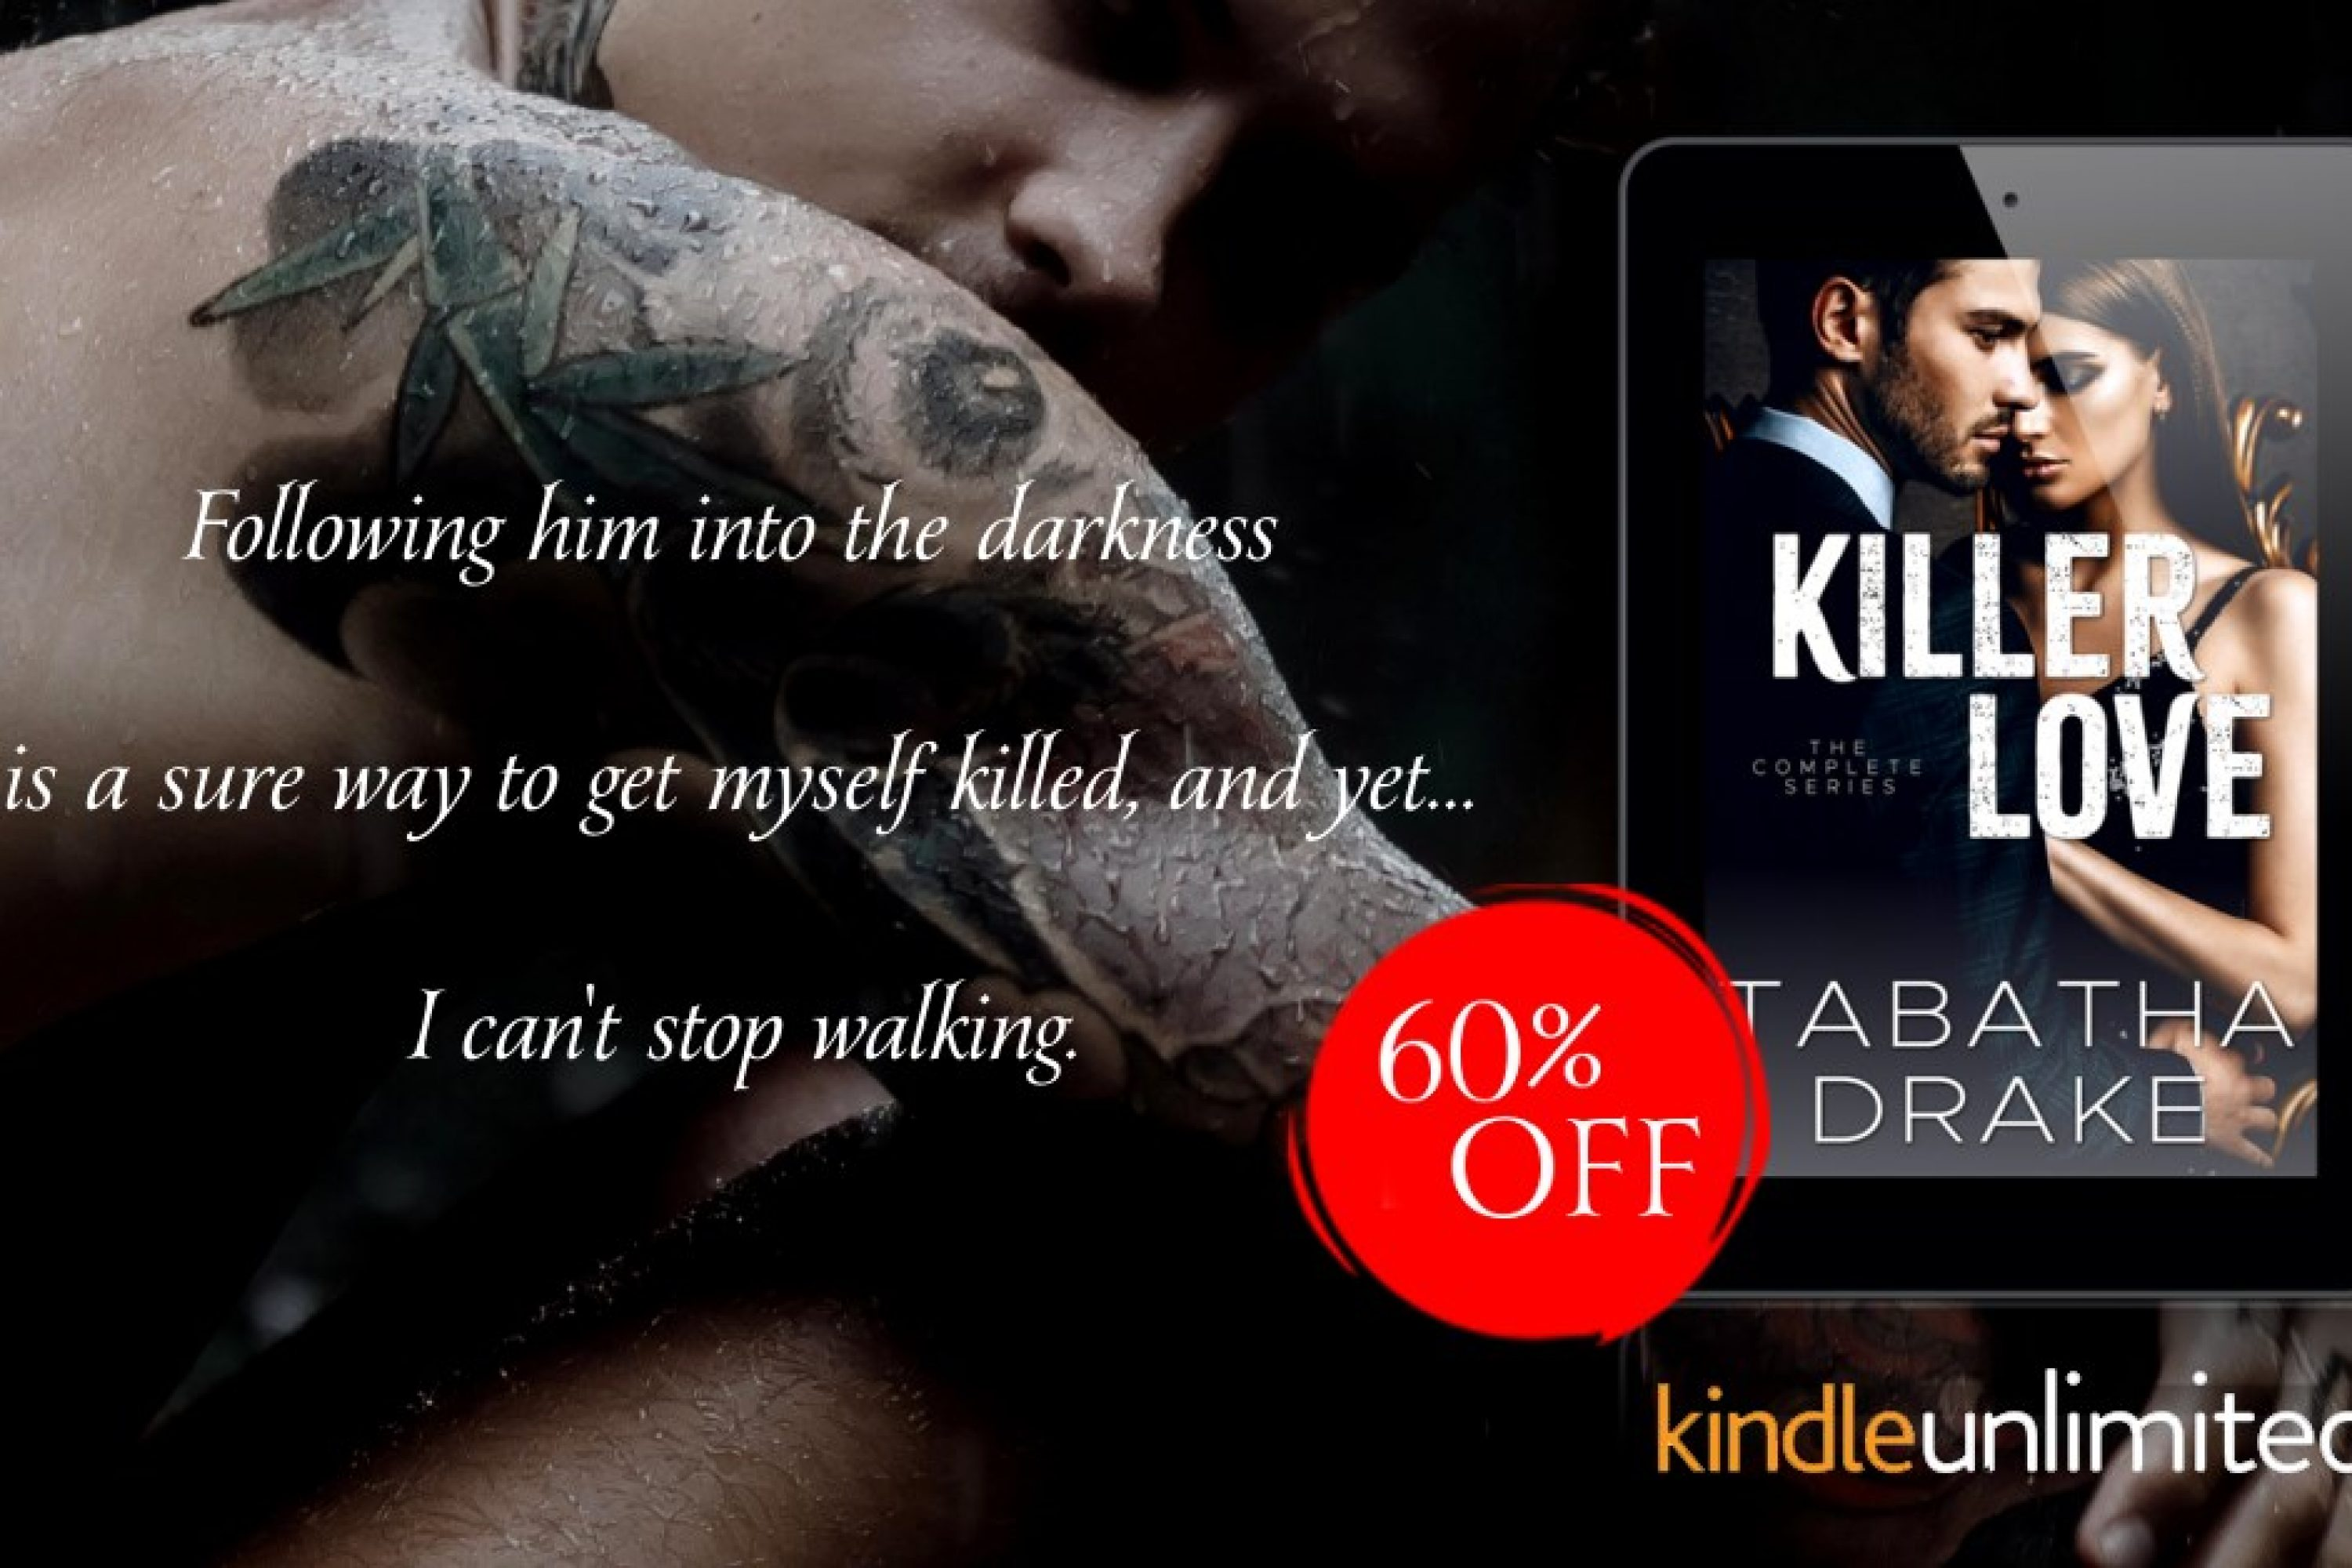 Sale Extended: Killer Love The Complete Series by Tabatha Drake